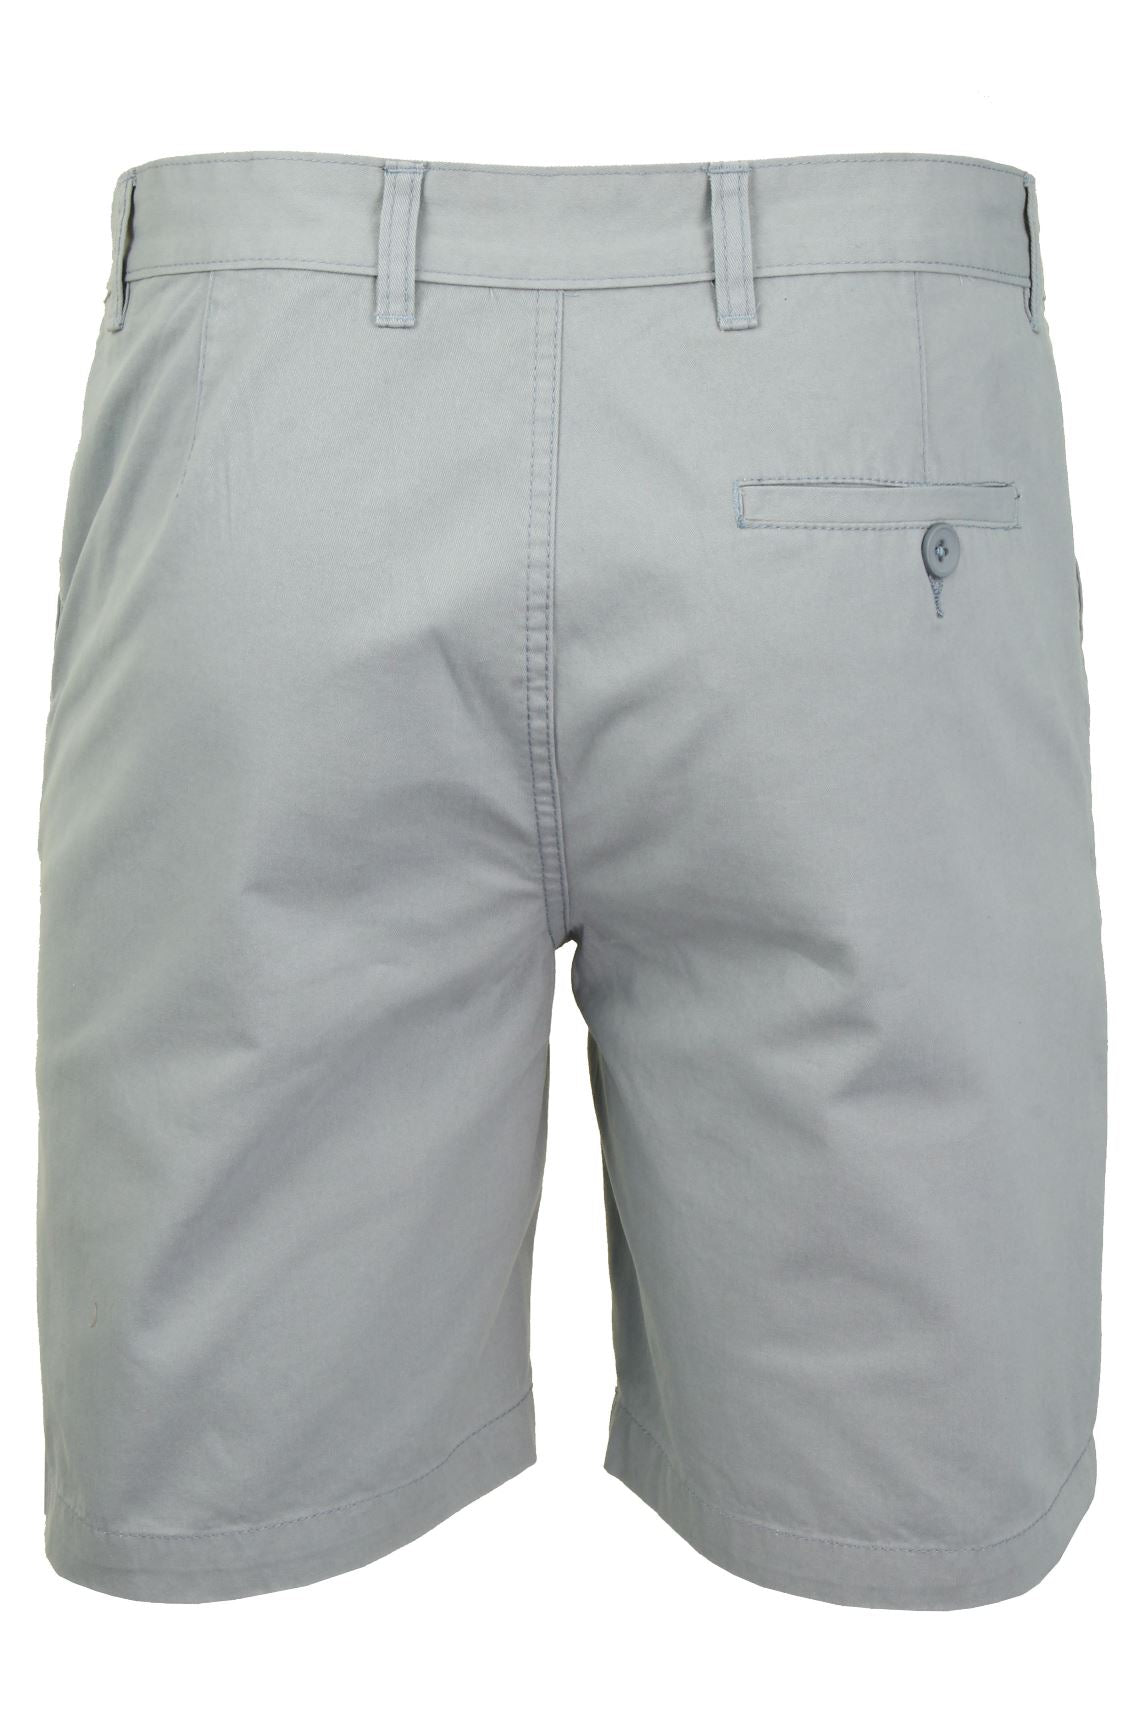 Xact Chino Shorts Mens Soft Feel Cotton Fashion Garment-3